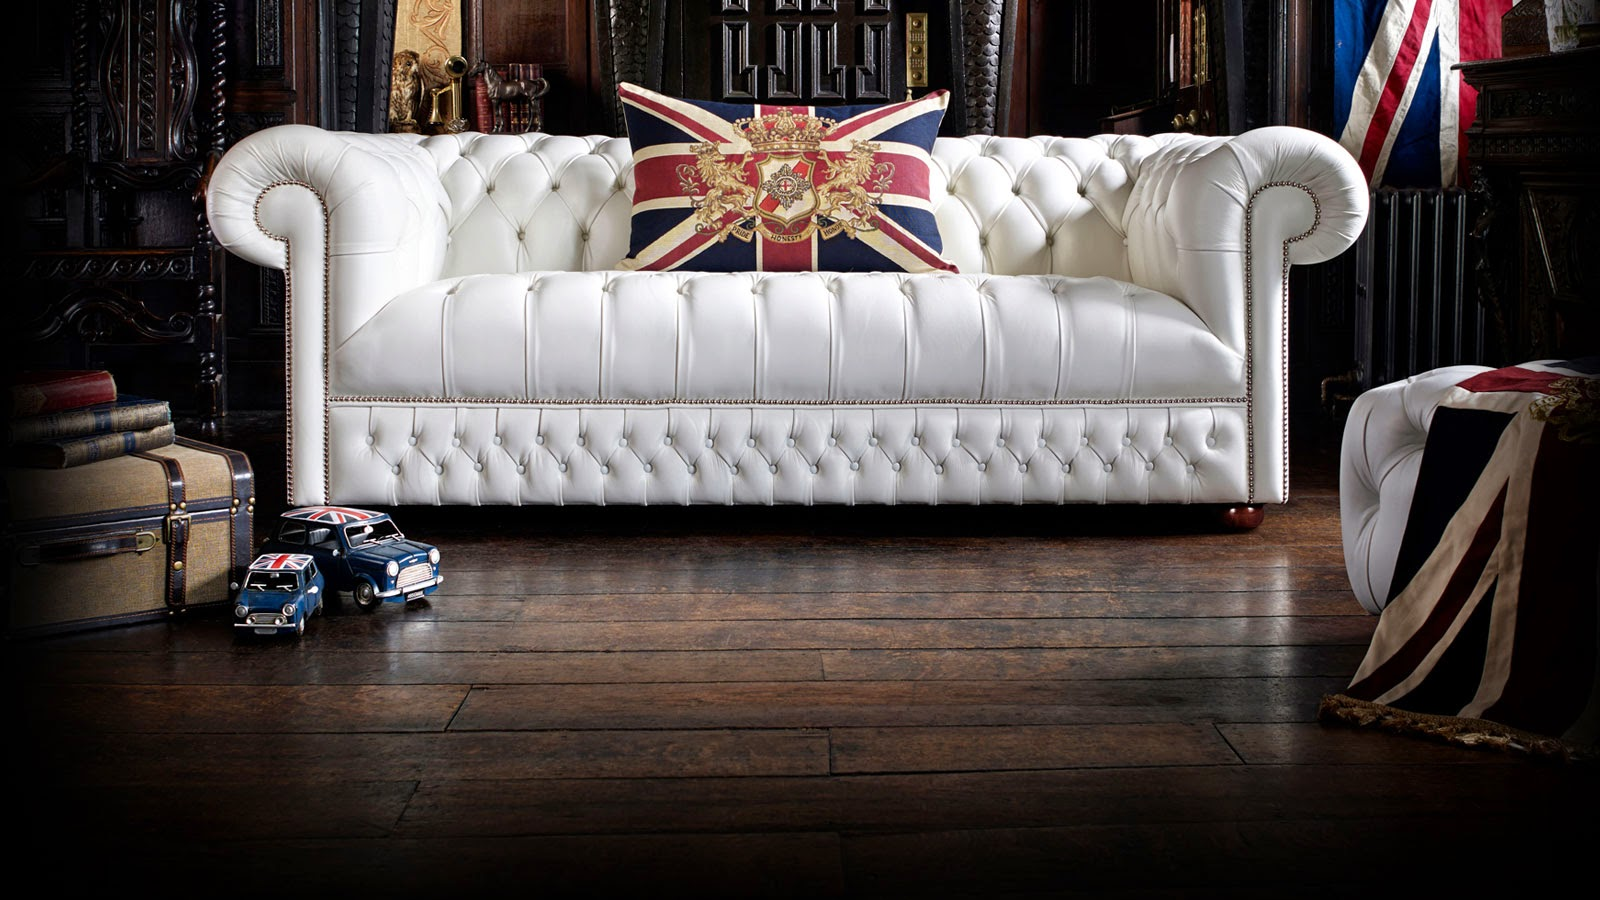 Chesterfield Divano Originale.Divani Chesterfield Originali Inglesi The English